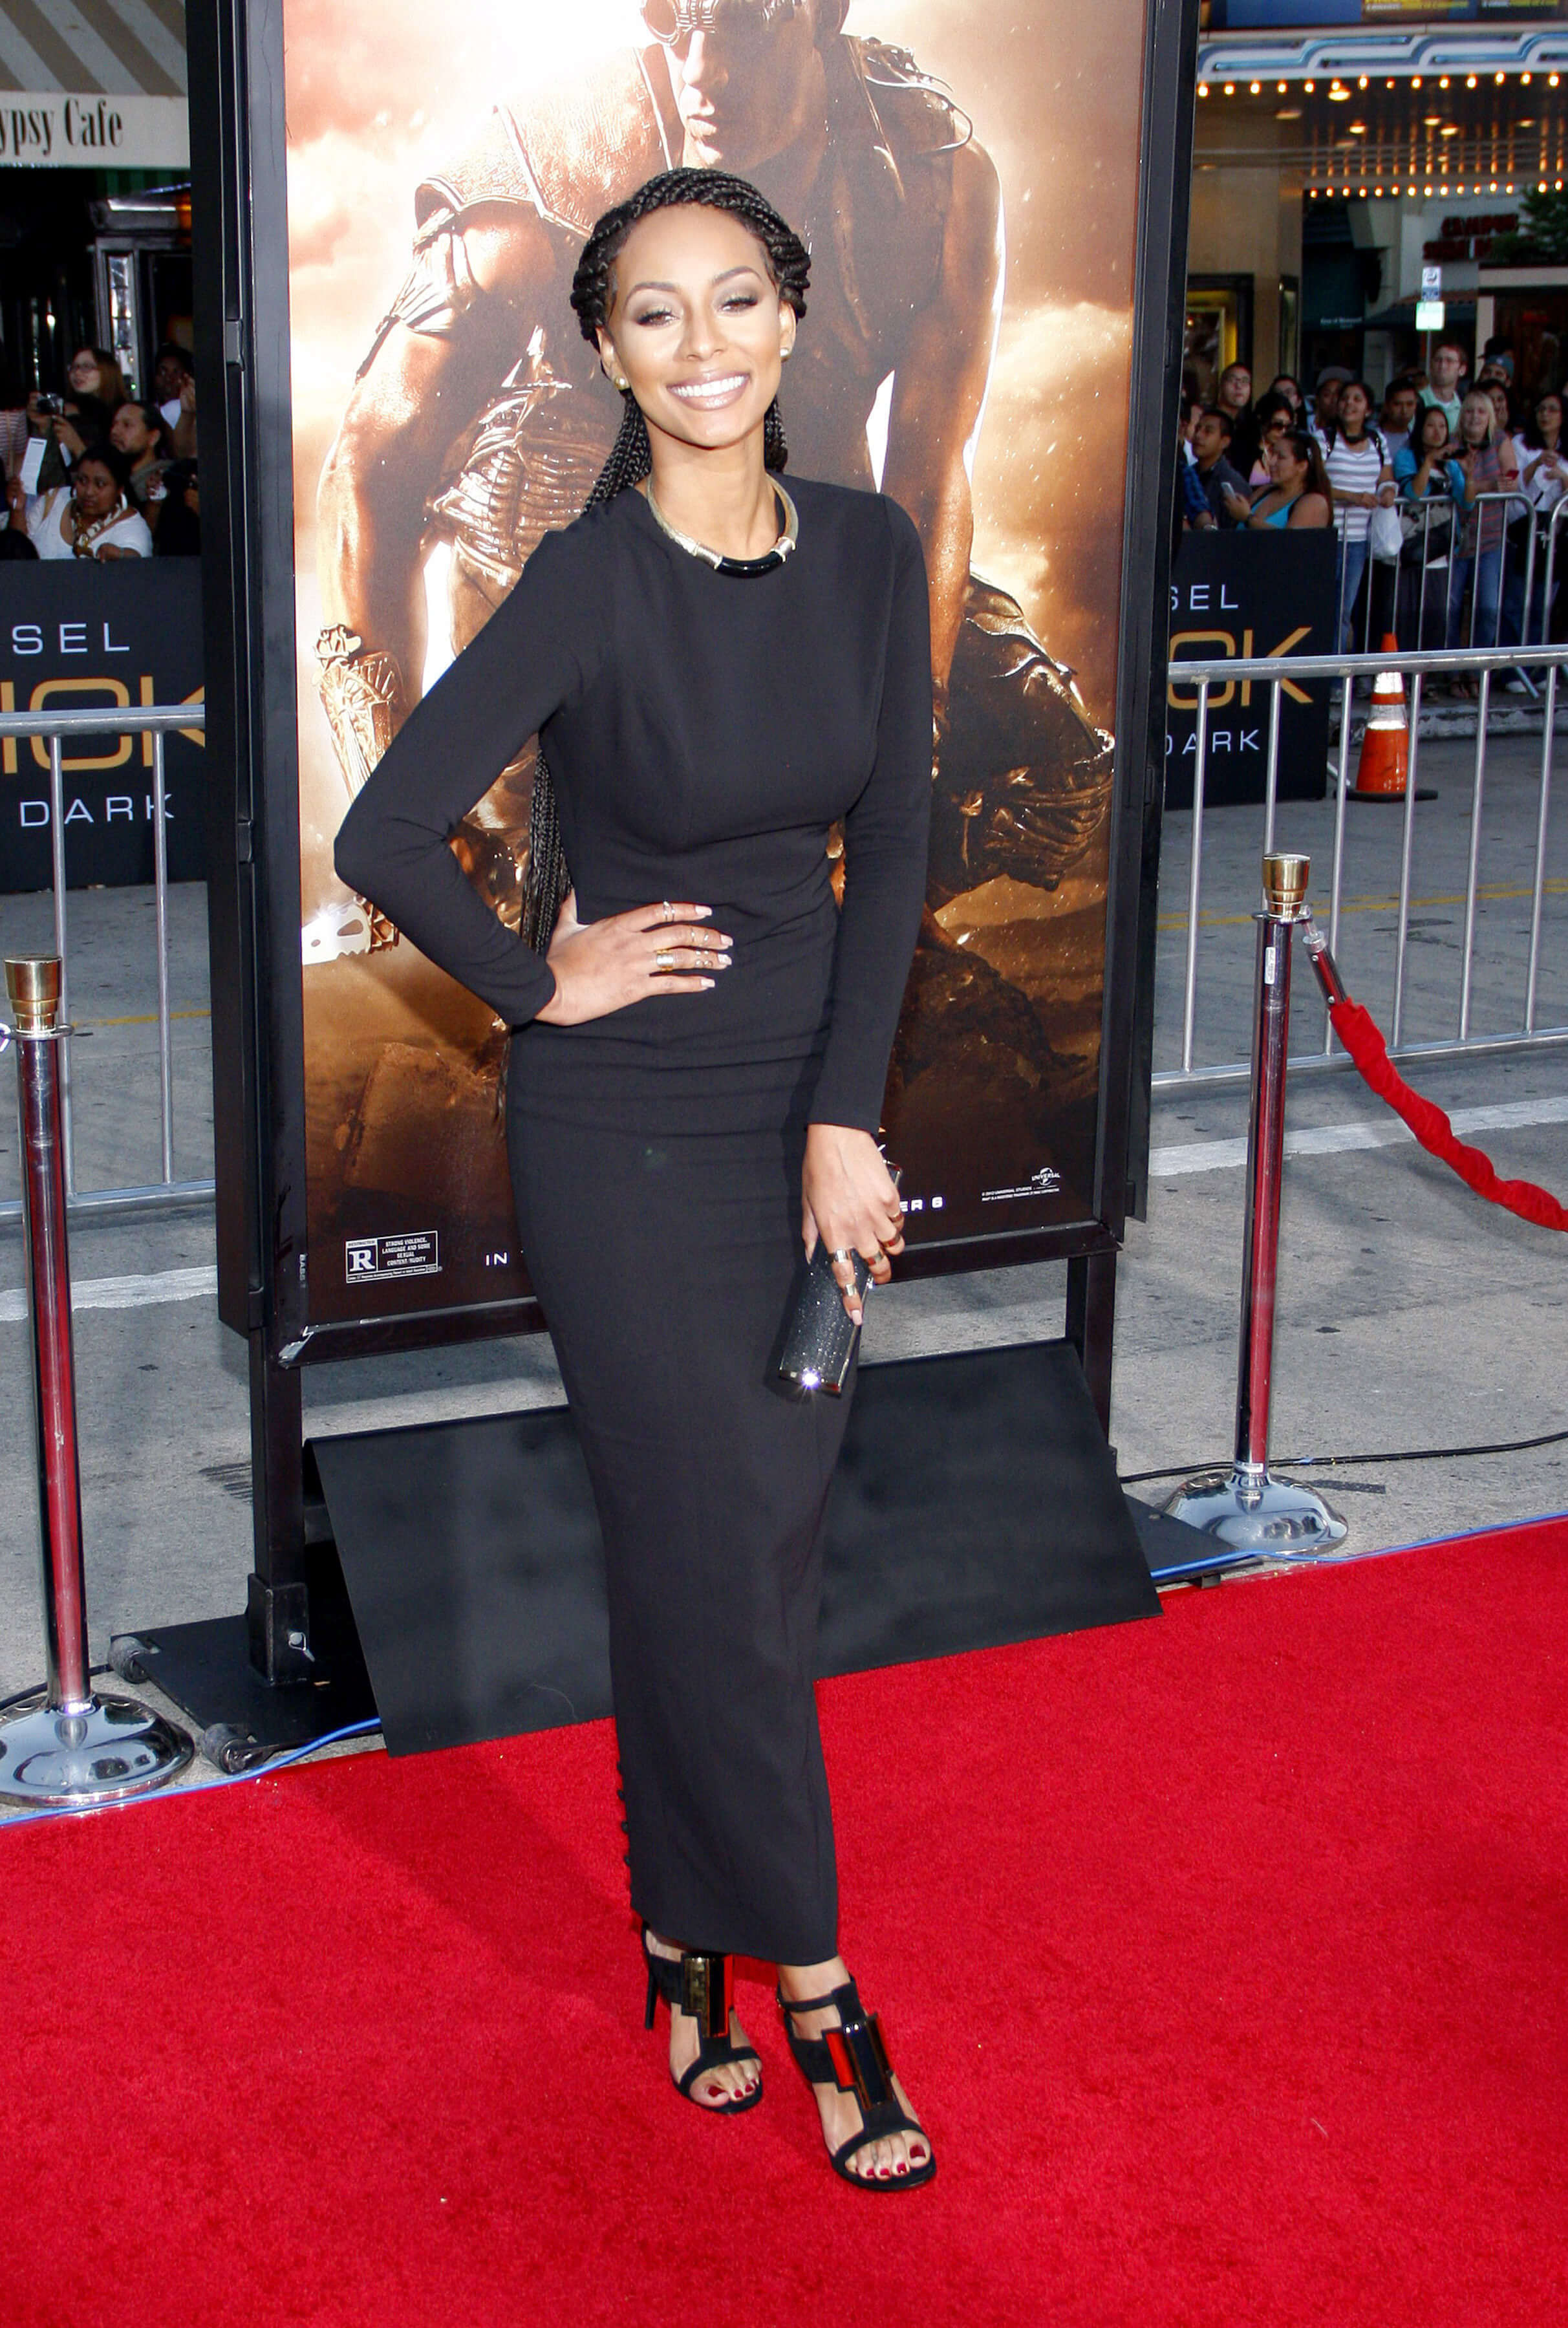 Keri Hilson long black dress pic